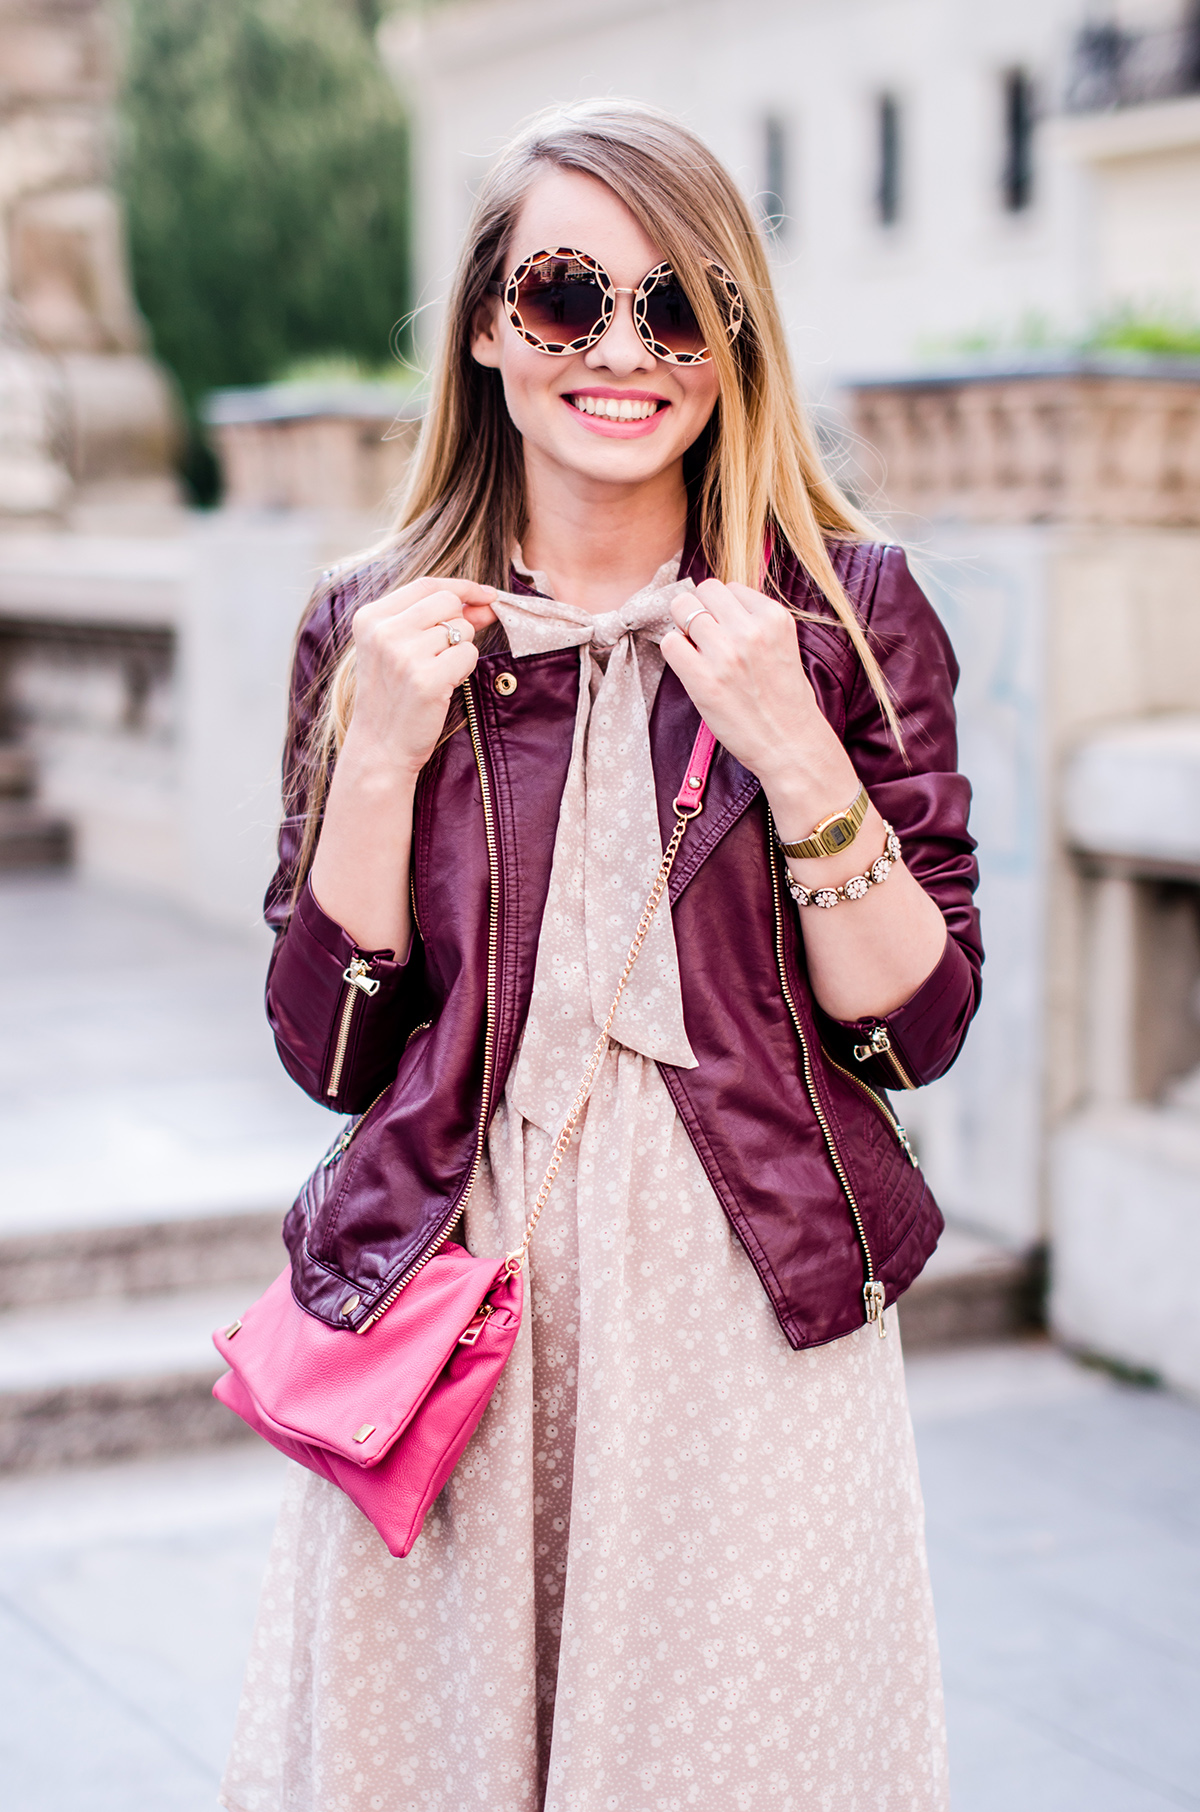 feminine-dress-bonprix-burgundy-jacket-outfit-pink-wish (9)